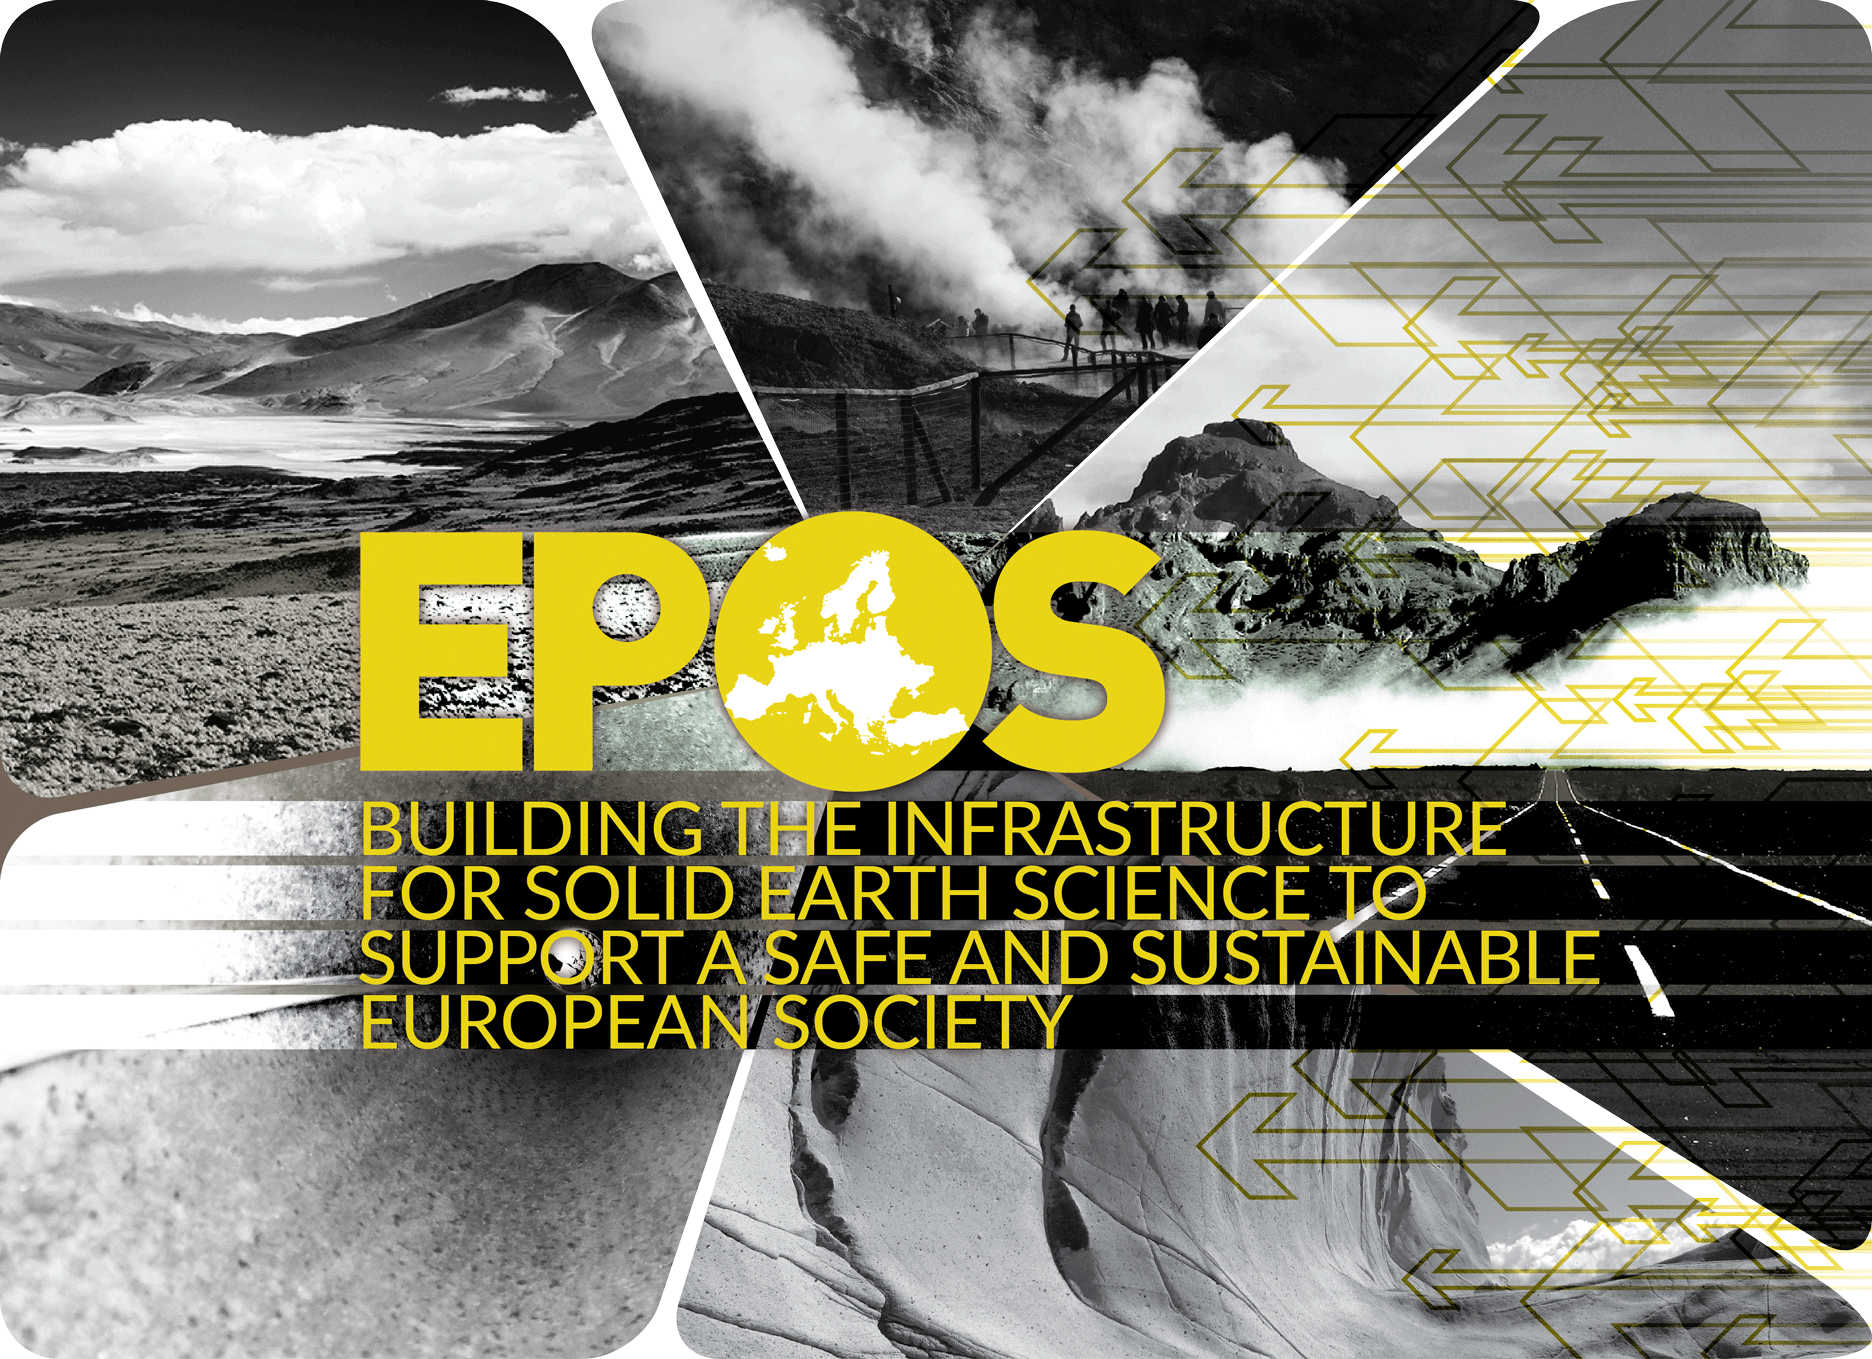 Building the infrastructure for solid Earth science to support a safe and sustainable European society